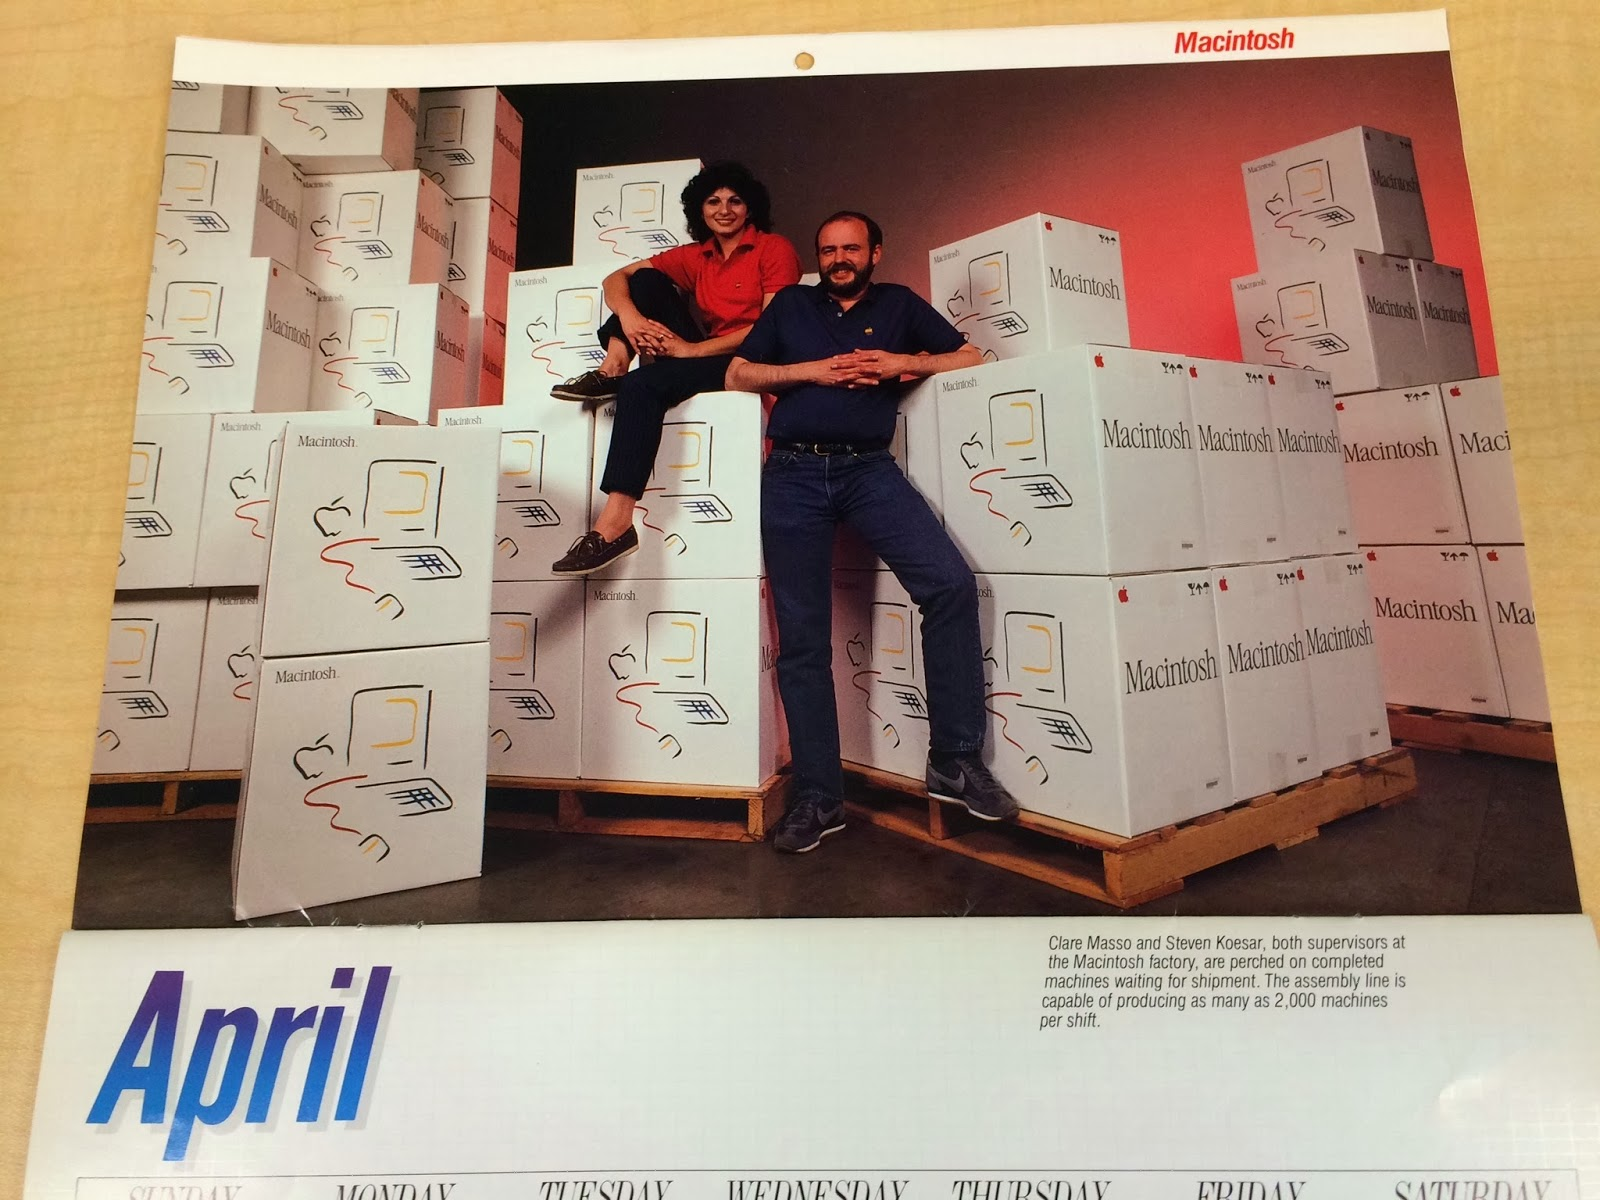 Witless to history: When the Macintosh had a pinup calendar